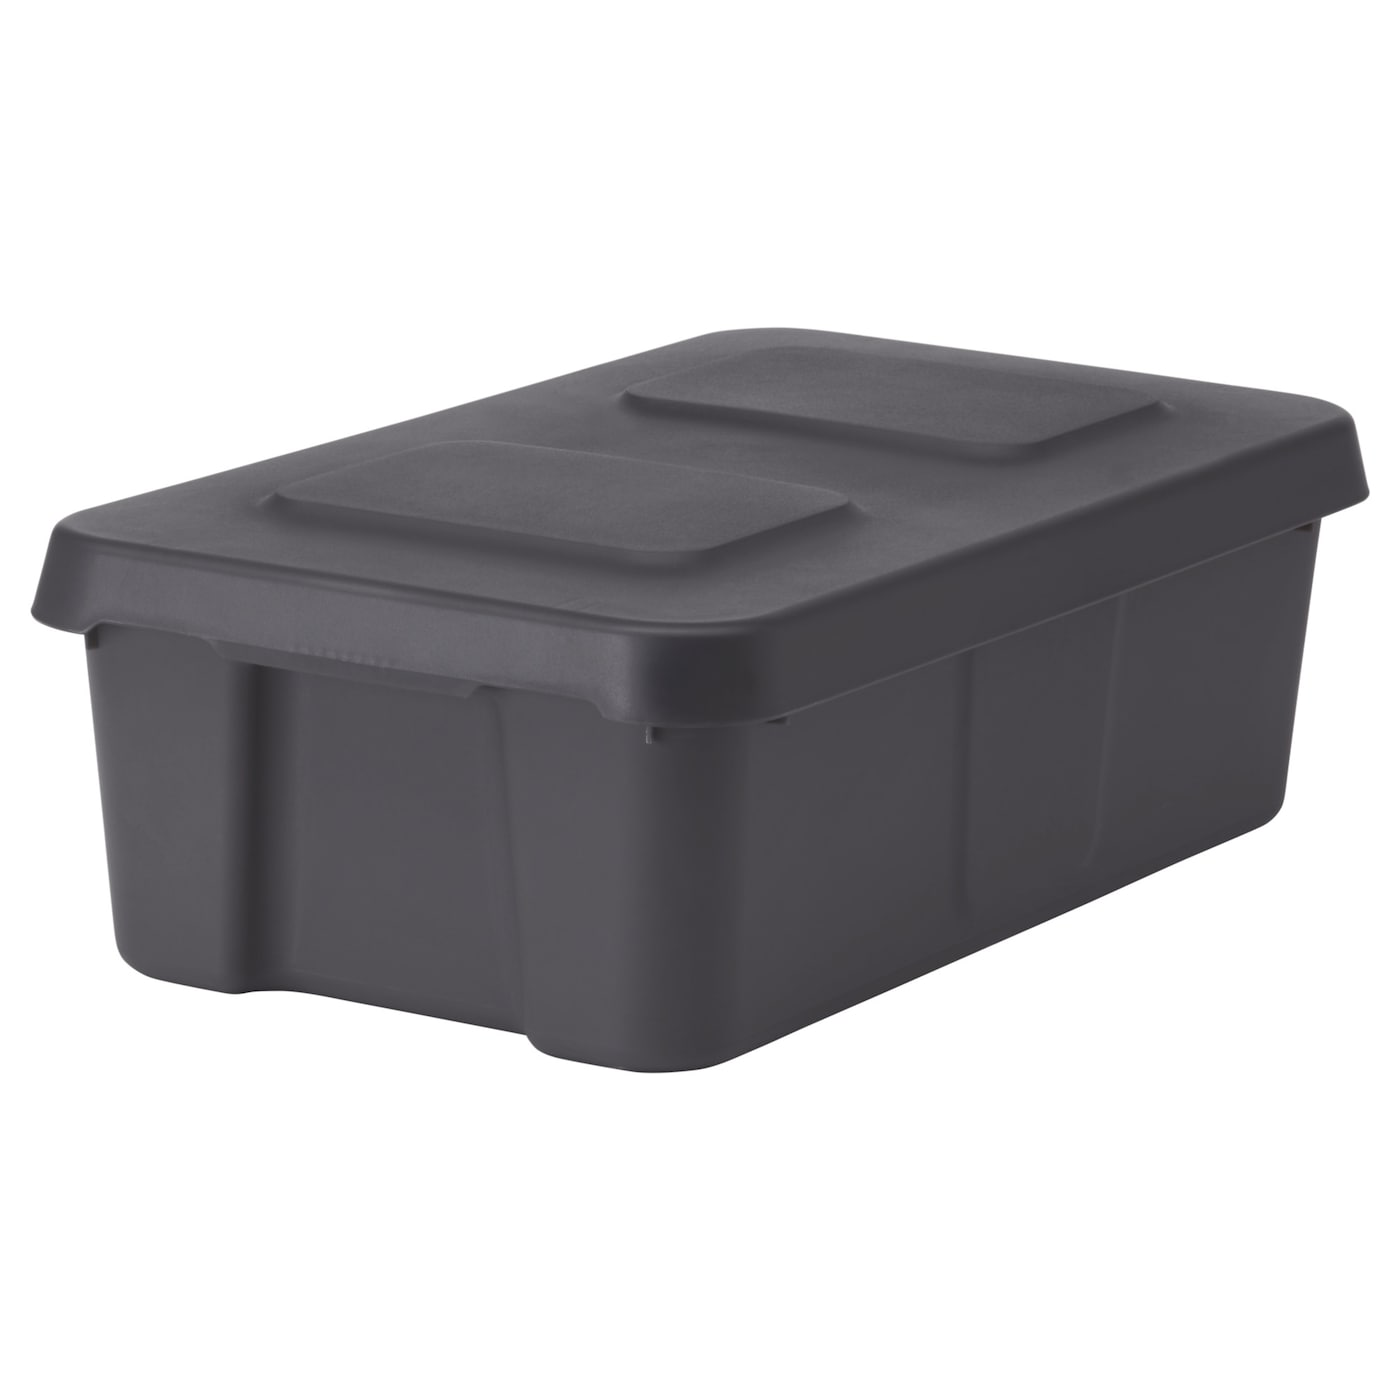 IKEA KLÄMTARE box with lid, in/outdoor